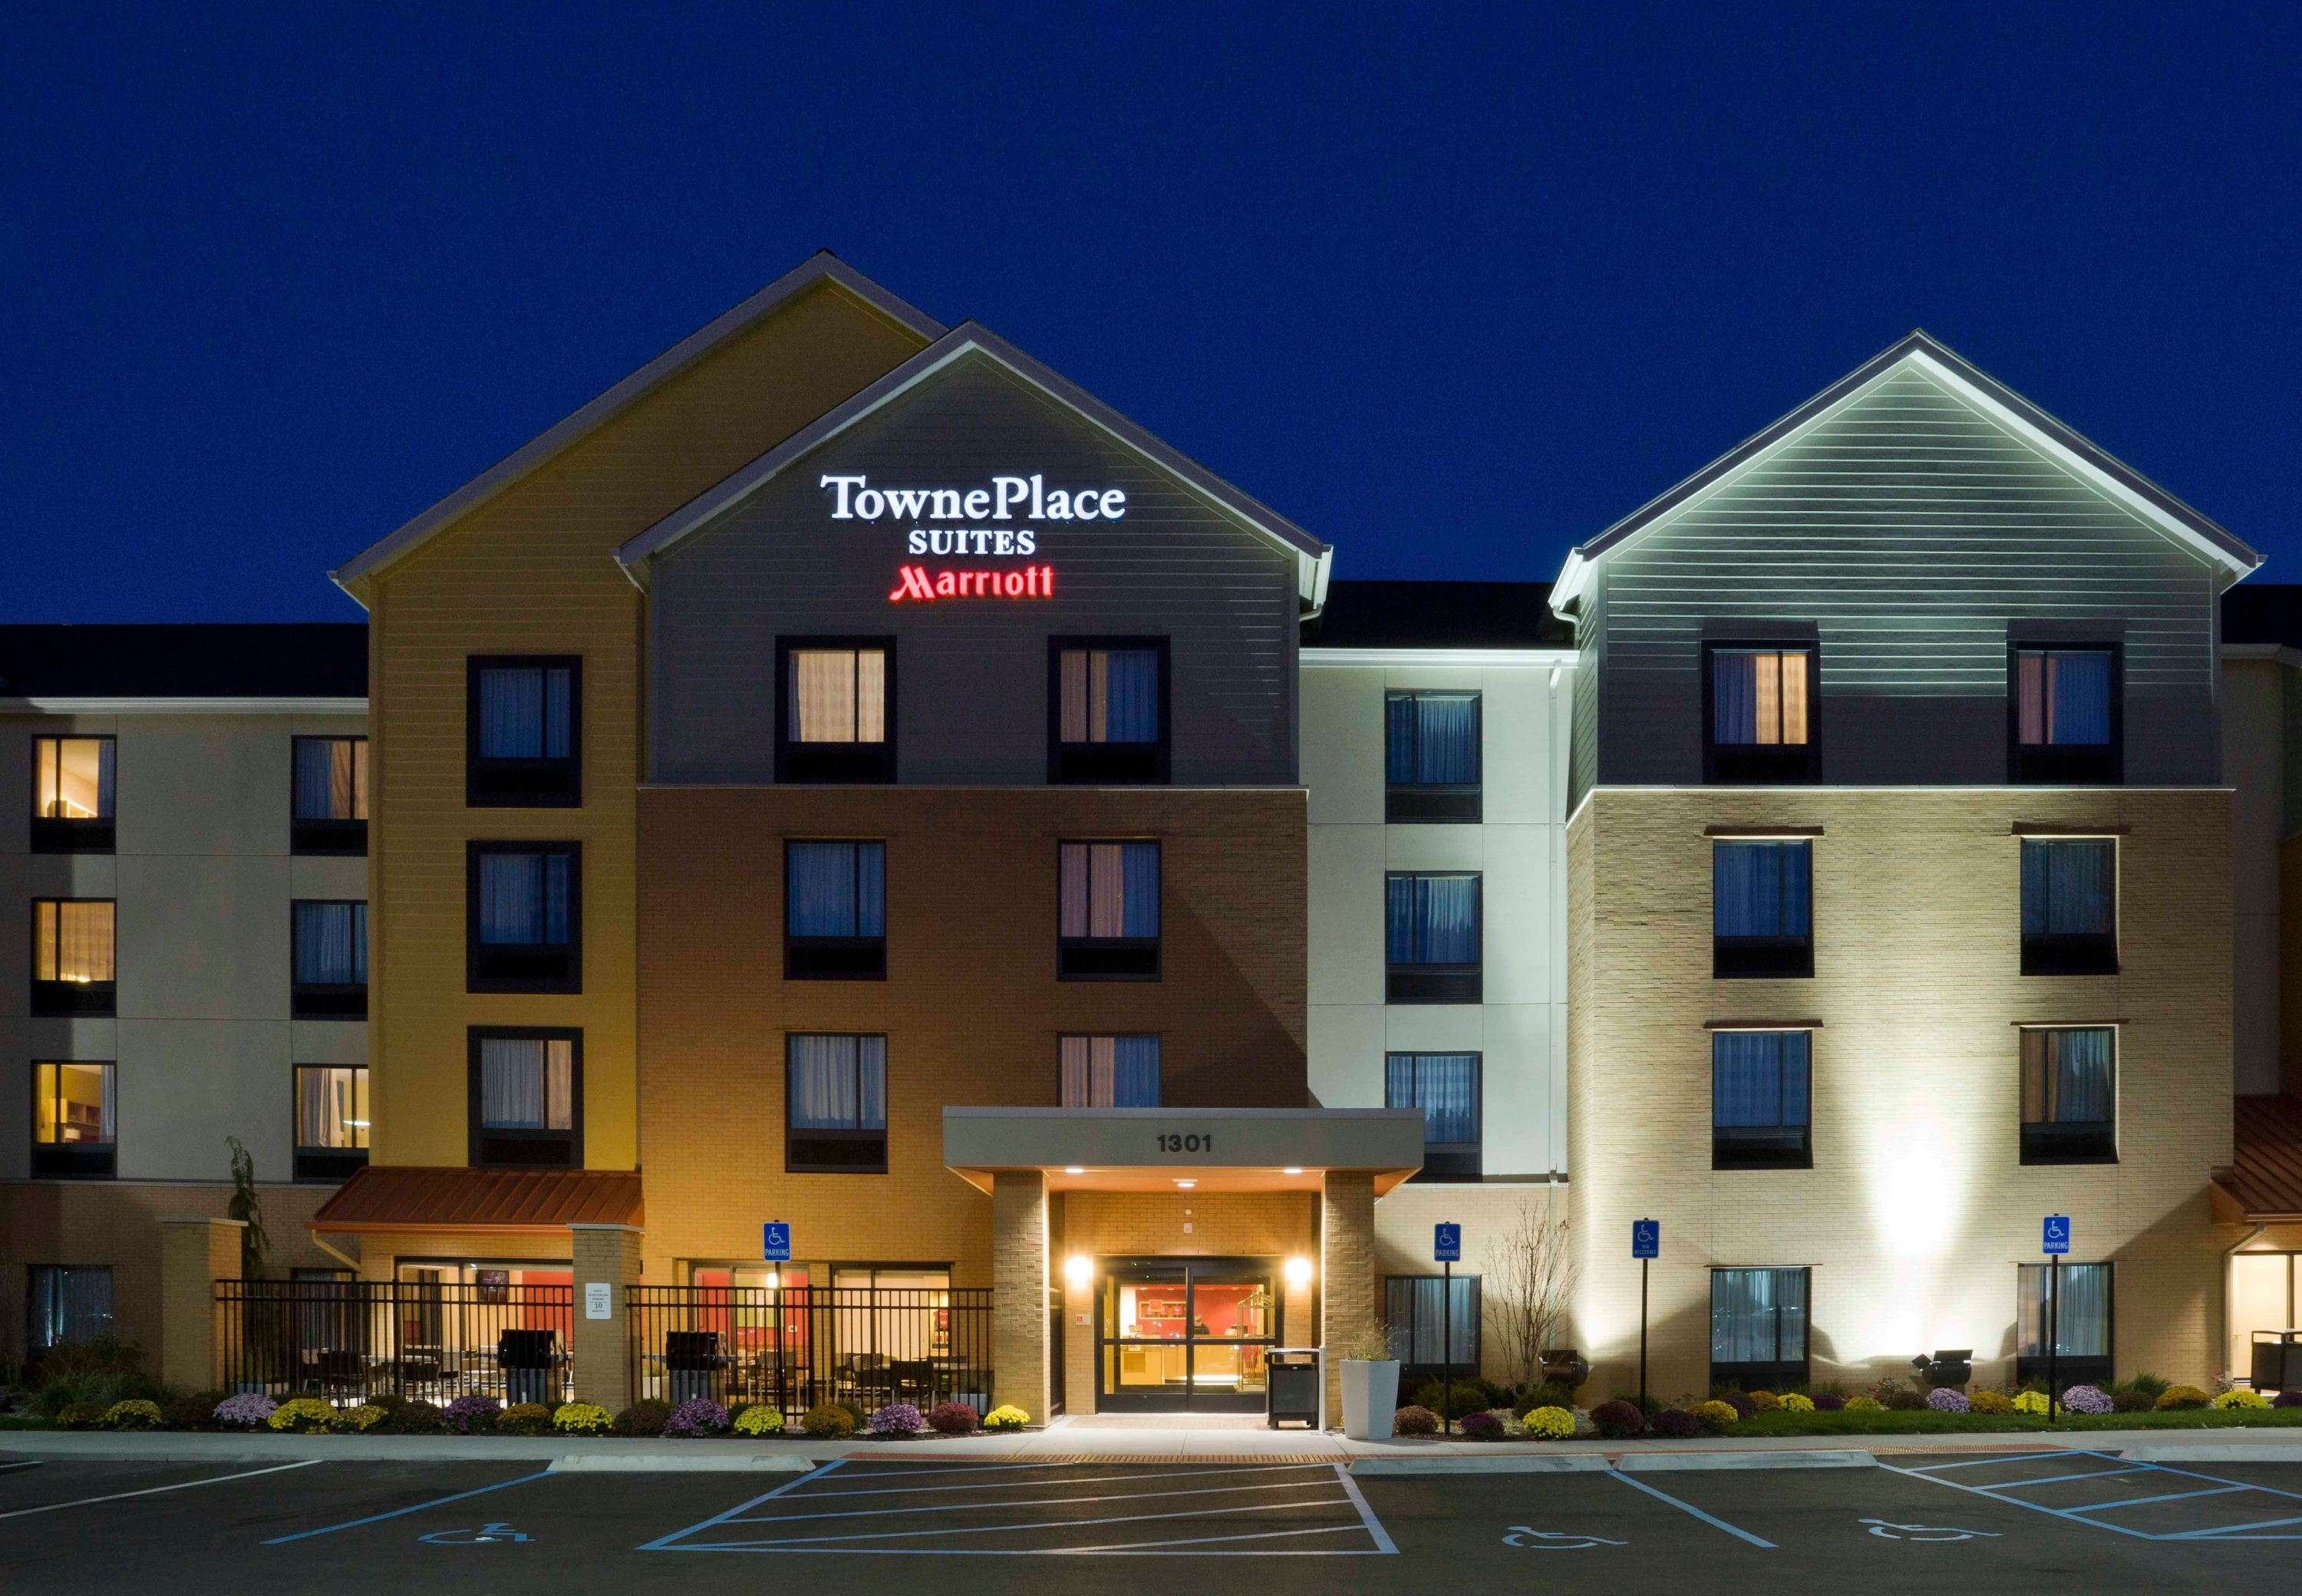 TownePlace Suites by Marriott Ann Arbor image 8